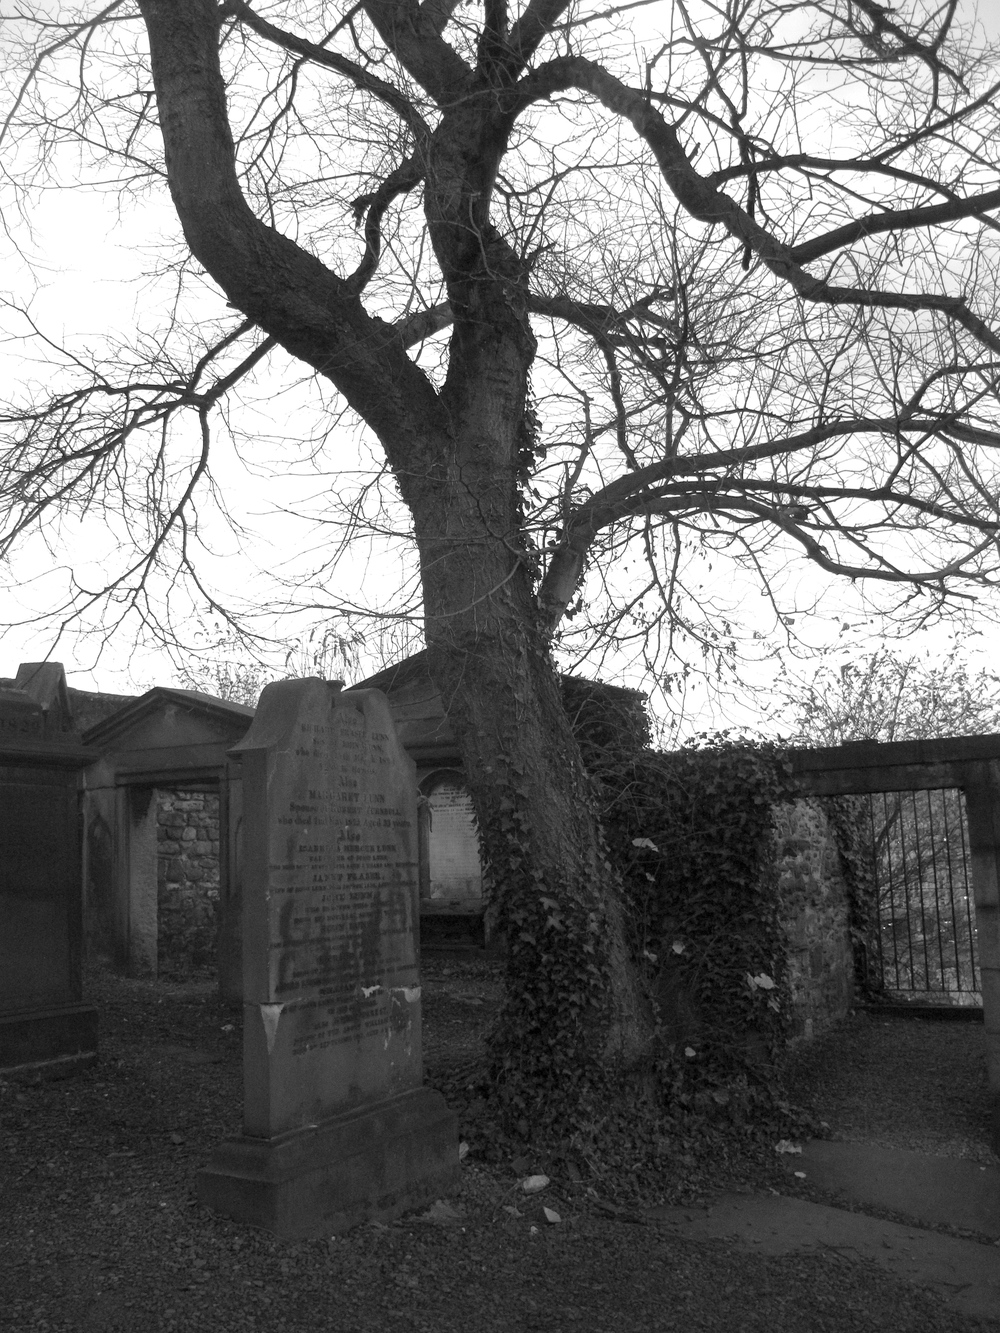 Tombstones and knarled trees in the Old Calton Cemetery